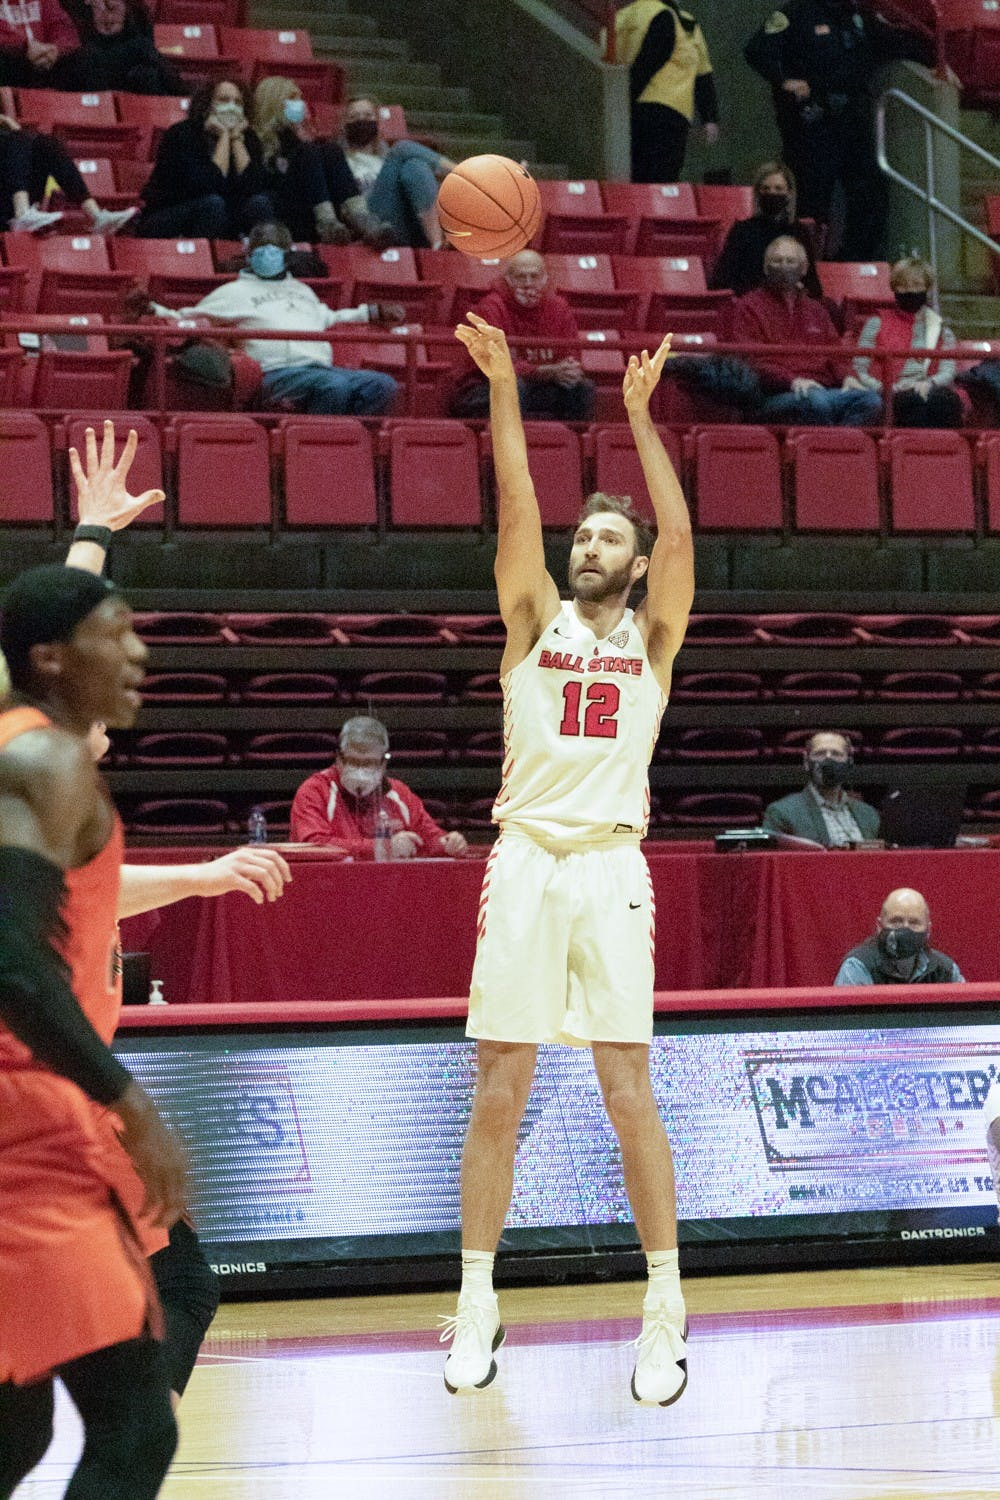 Cardinals can't put together complete game in loss to Akron